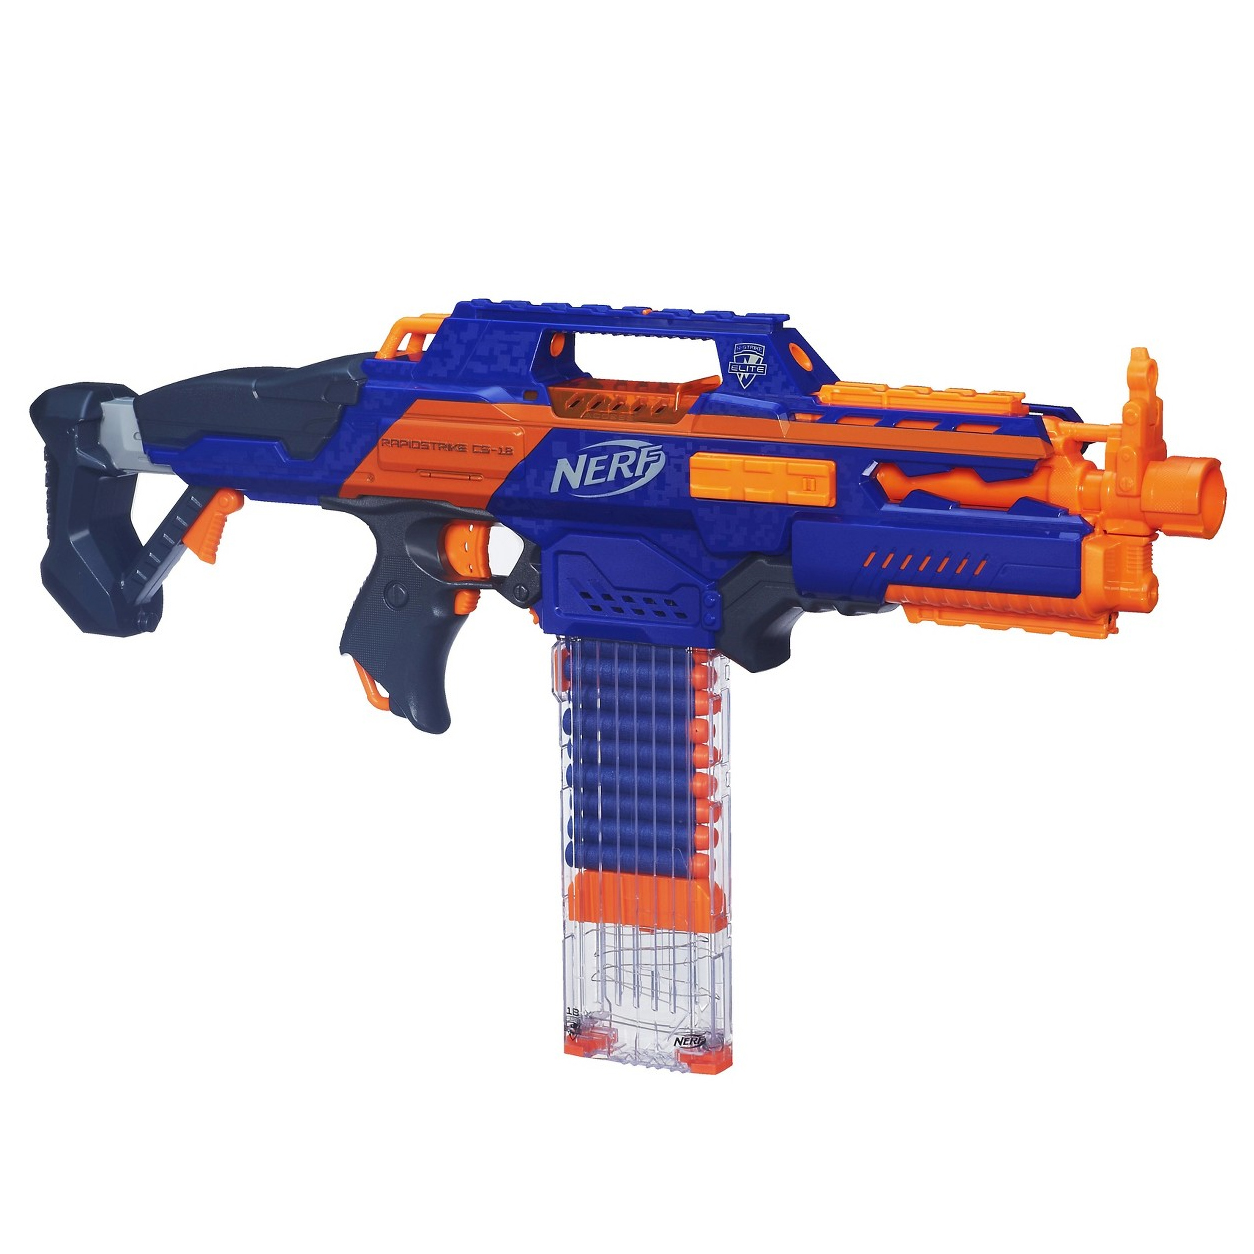 RapidStrike CS-18 | Nerf Wiki | FANDOM powered by Wikia